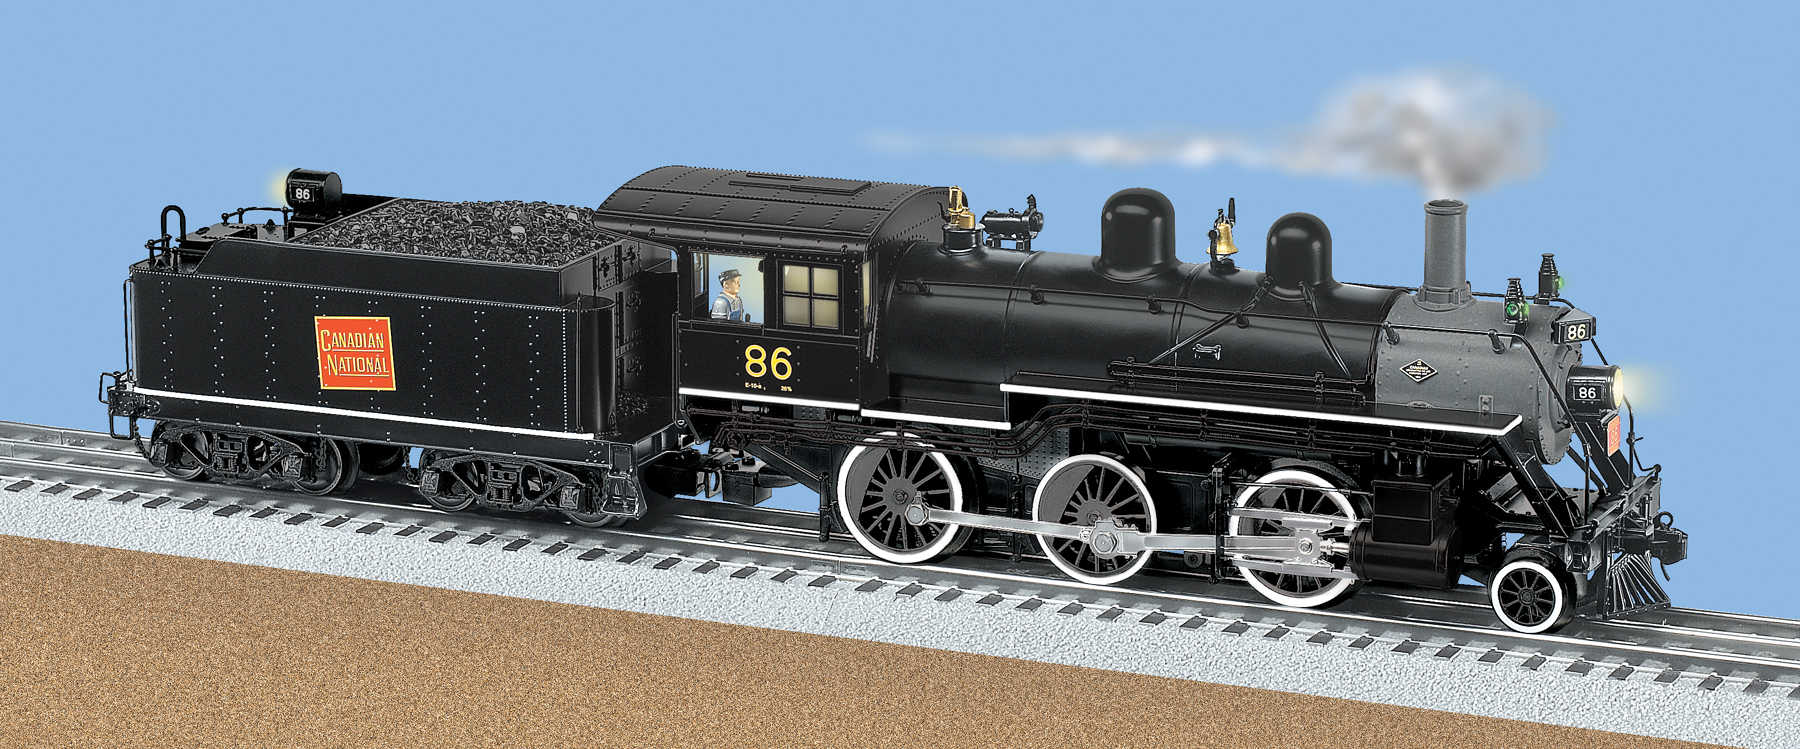 canadian national tmcc scale 2 6 0 mogul steam locomotive 86 ho track wiring lionel trainmaster wiring [ 1800 x 749 Pixel ]